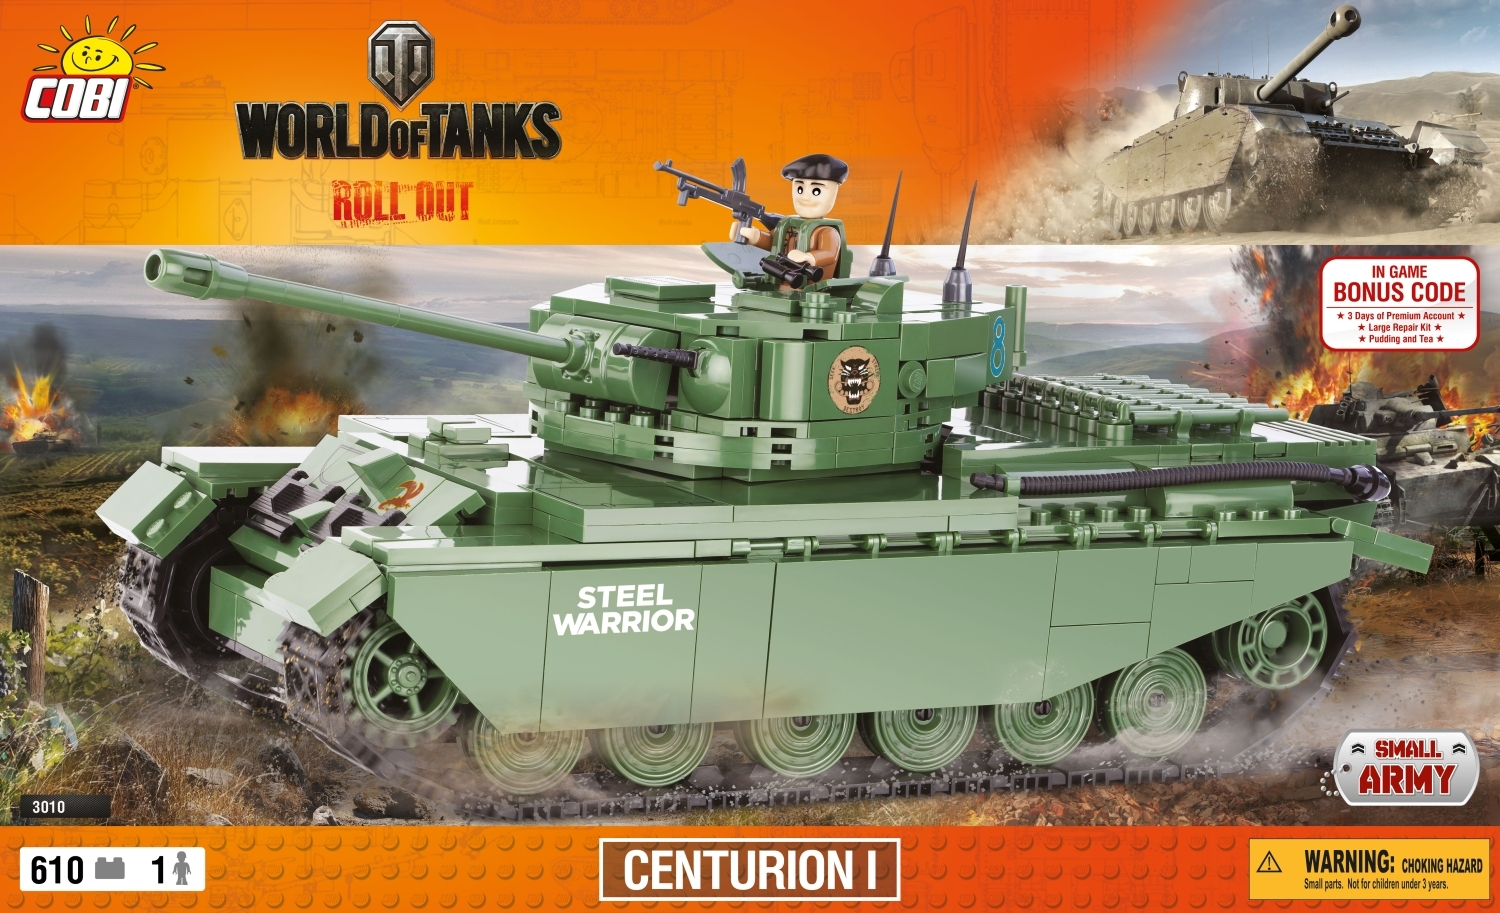 3010_Cobi_2.WK_World_of_Tanks_Centurion_1_www.super-bricks.de_12